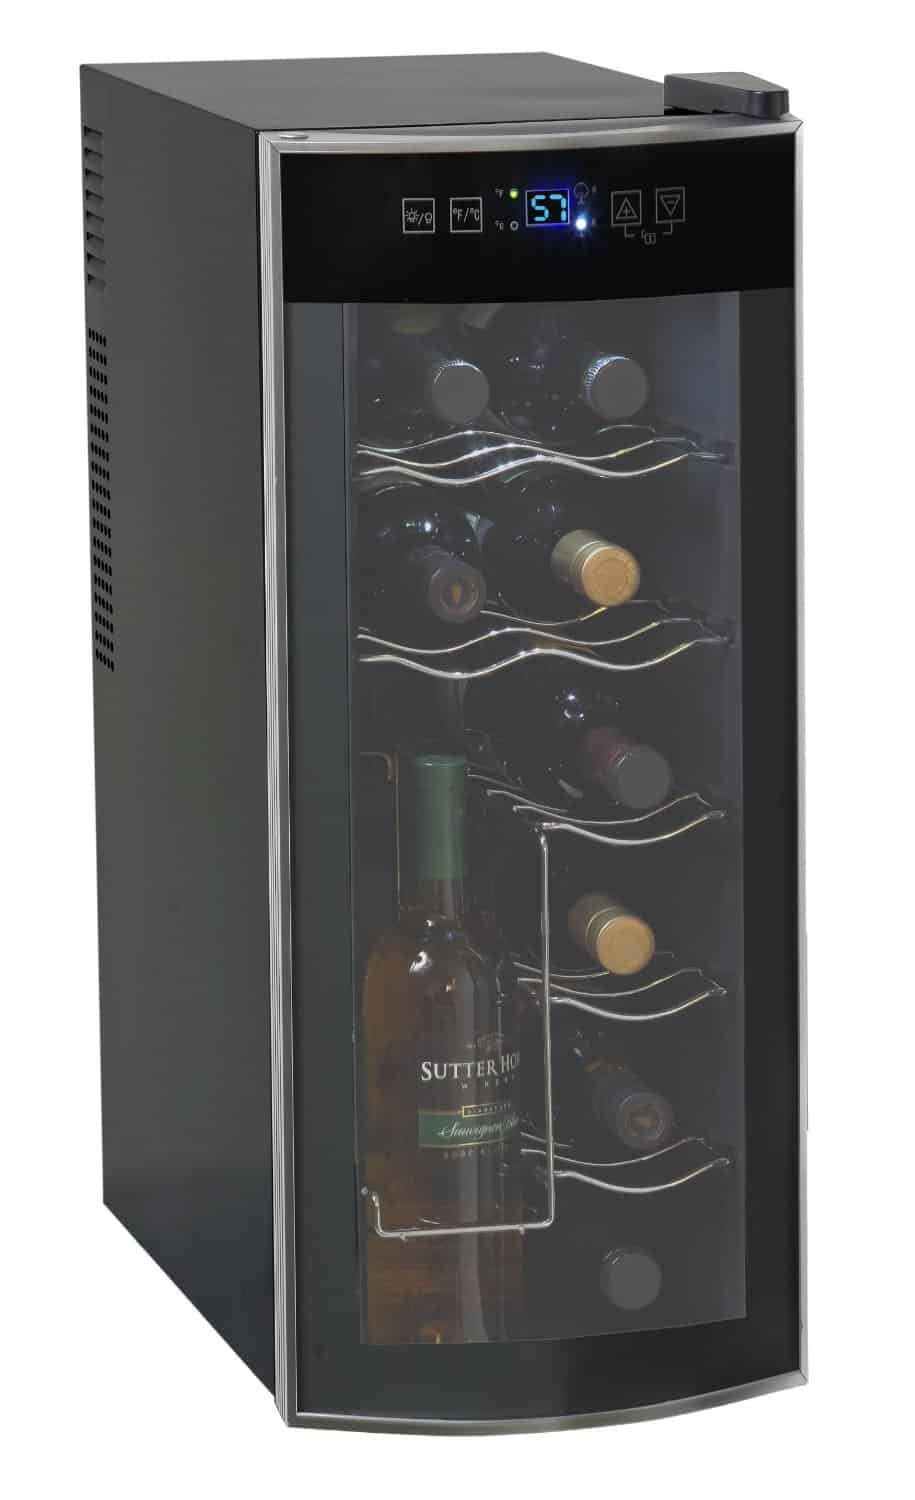 Best Wine Refrigerator: Coolers Reviews & Consumer Reports 4